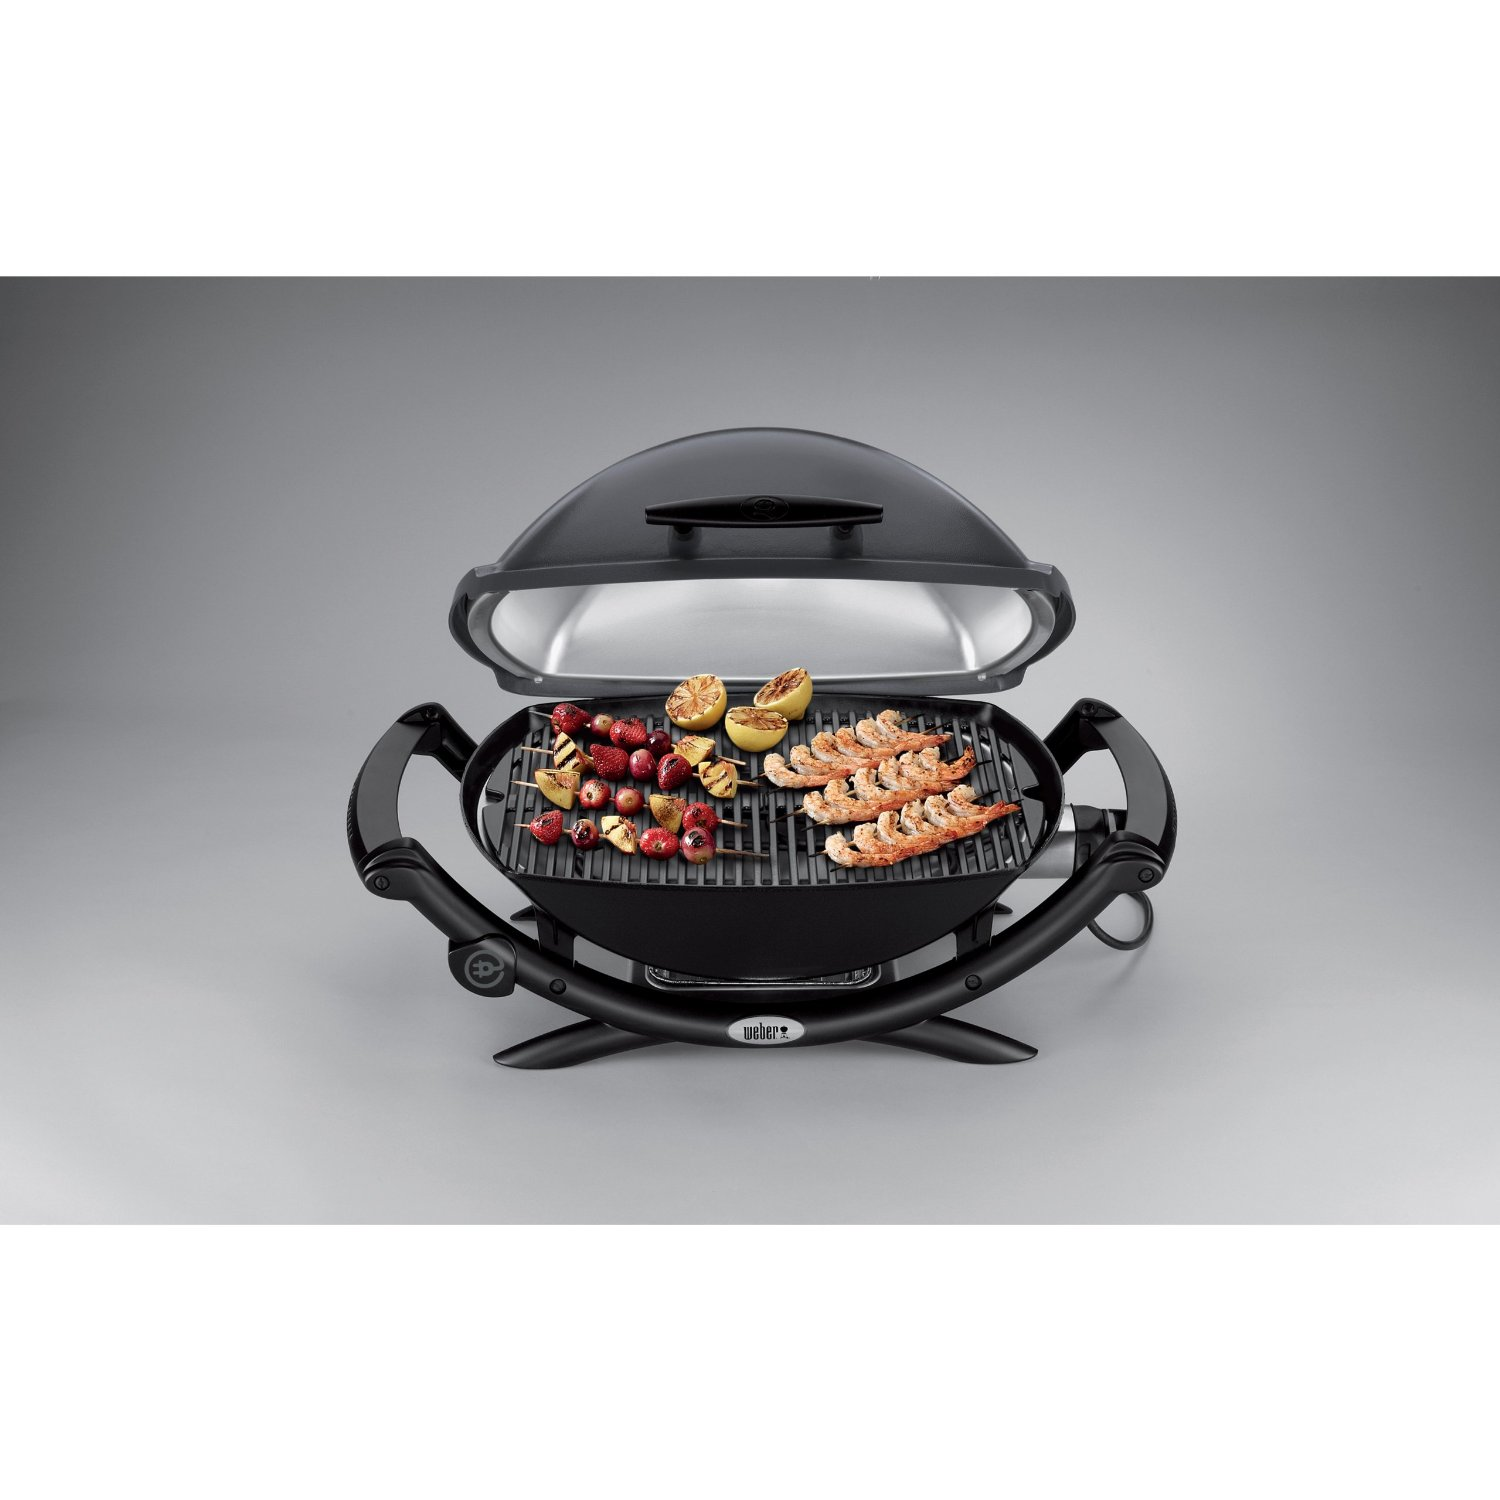 weber q2400 electric grill review grill rankings. Black Bedroom Furniture Sets. Home Design Ideas